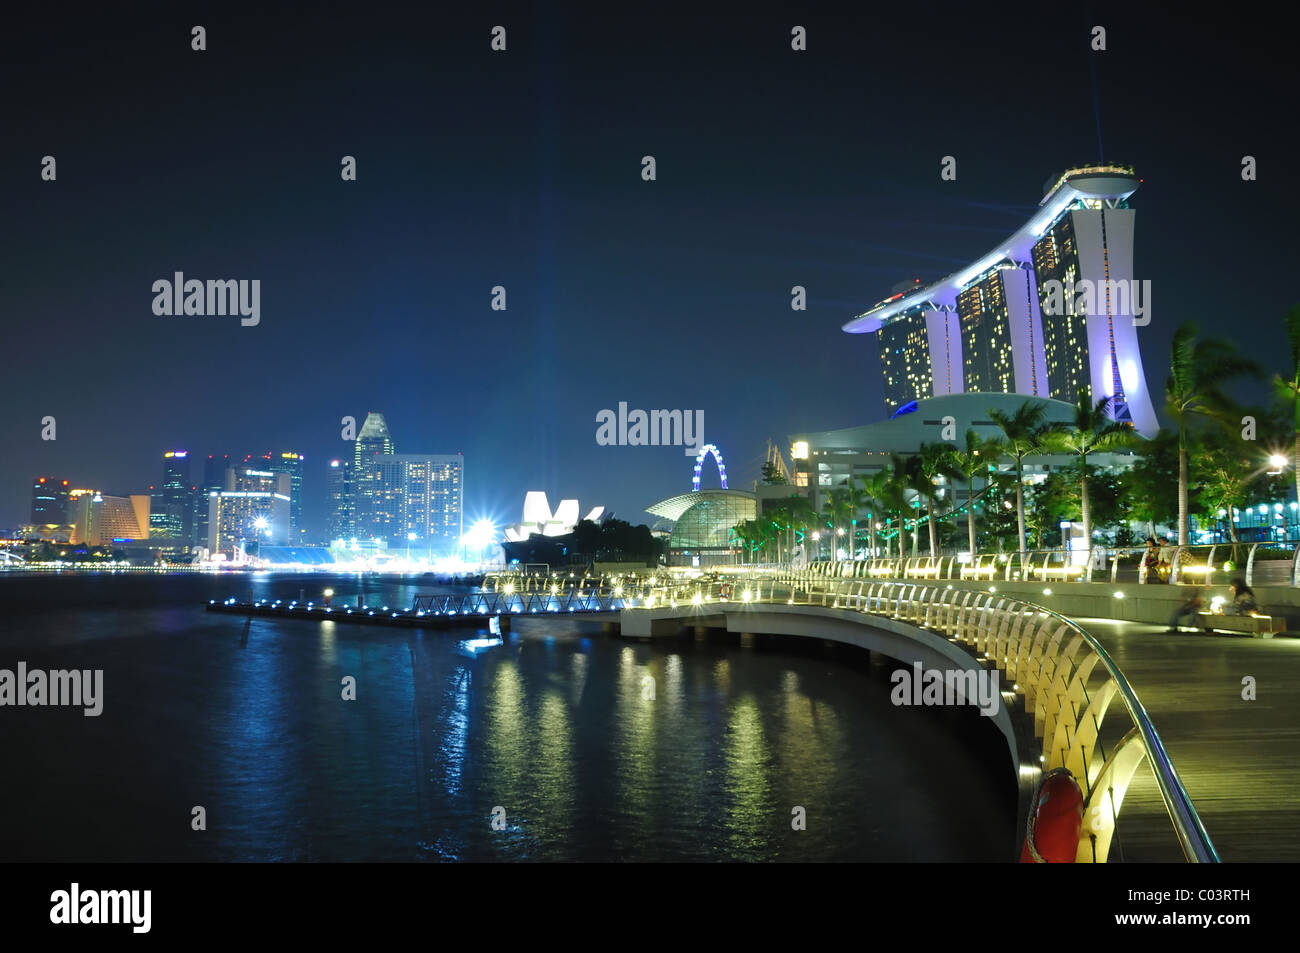 The Marina Bay Sands Hotel and Integerated Resort as viewed from the Marina Bay Promontory. - Stock Image